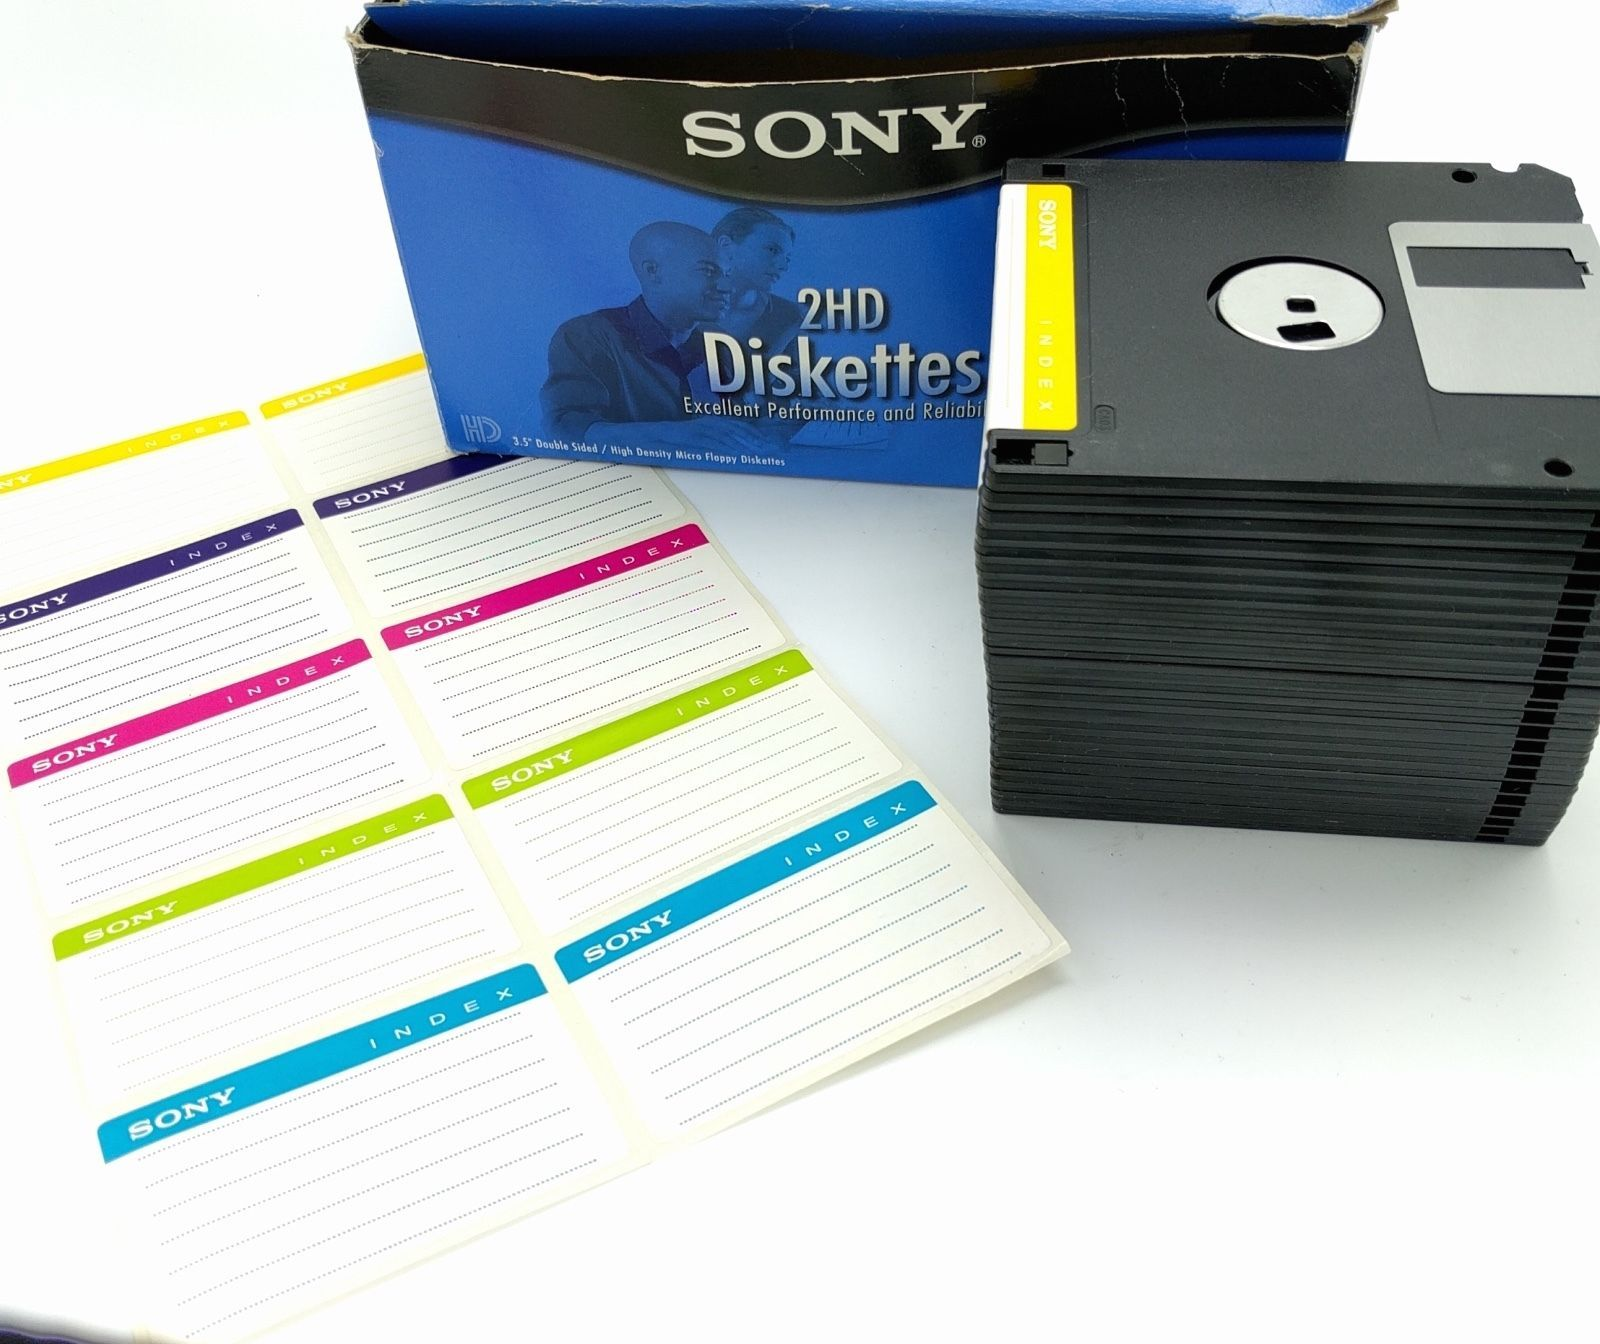 24 Sony Micro FLOPPY DISKS Diskettes 3.5in IBM Formatted 1.44MB 25MFD-2HD - $19.79